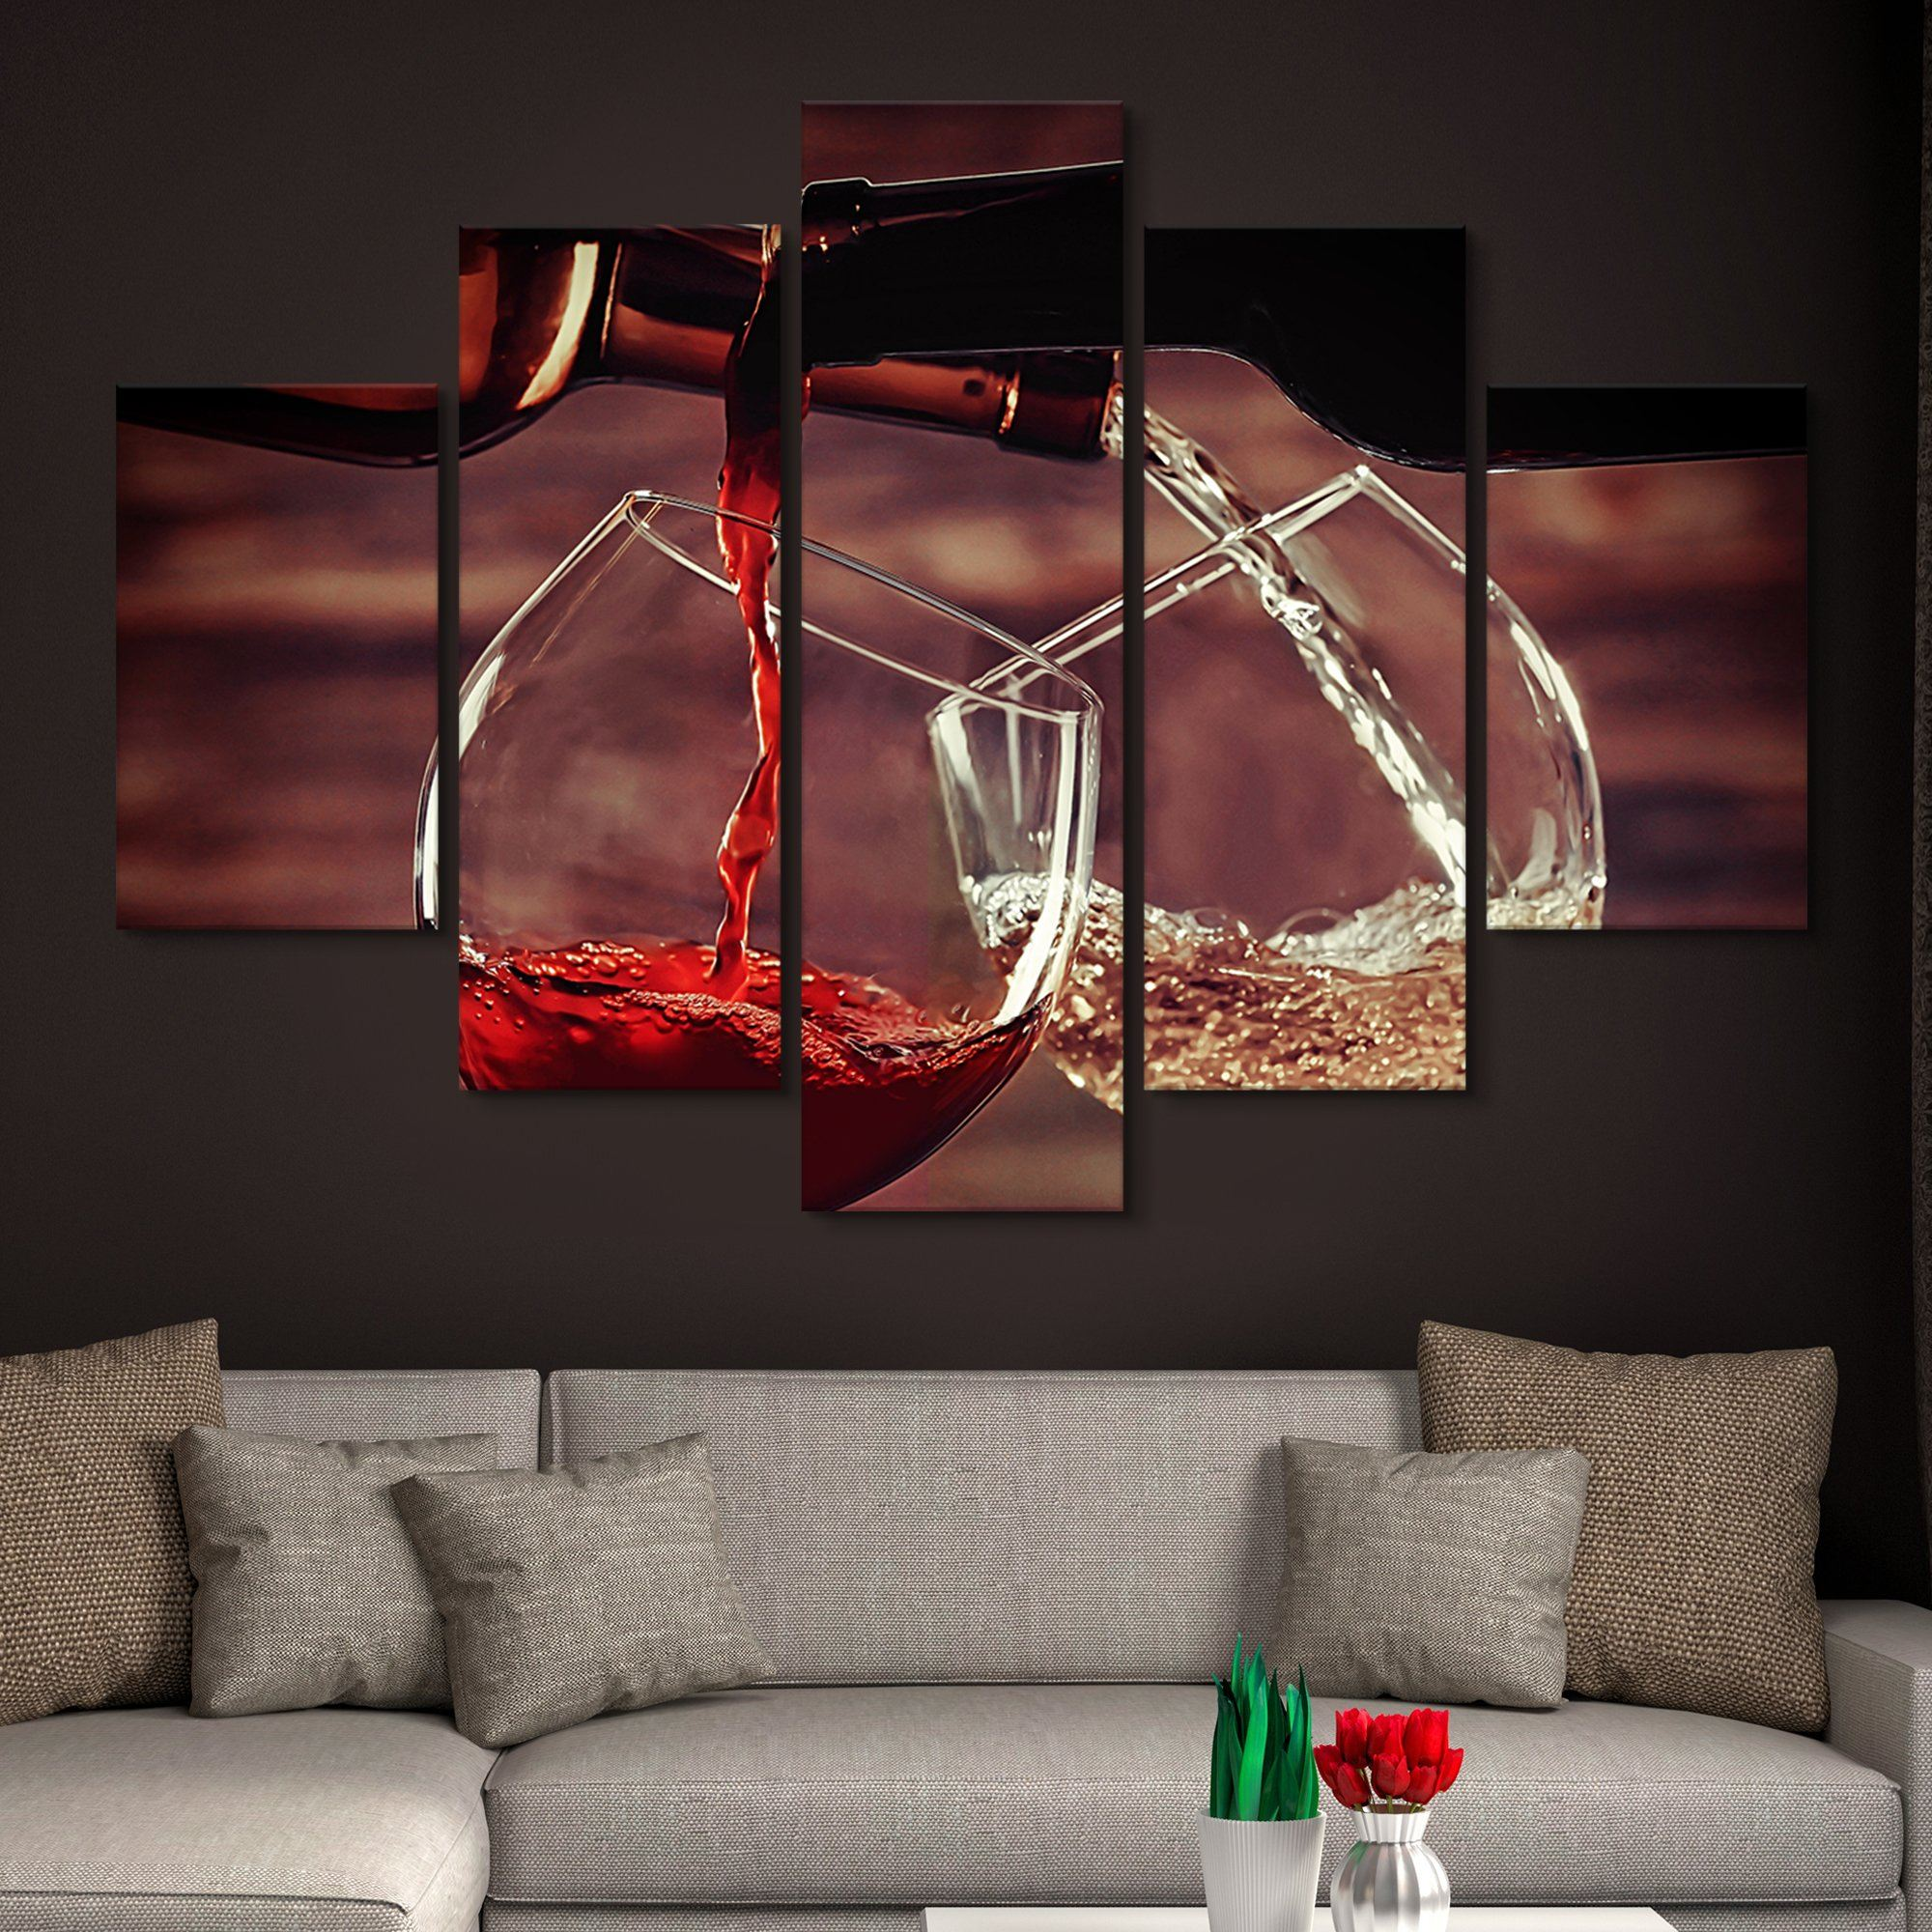 5 piece White and Red Wine Pouring wall art